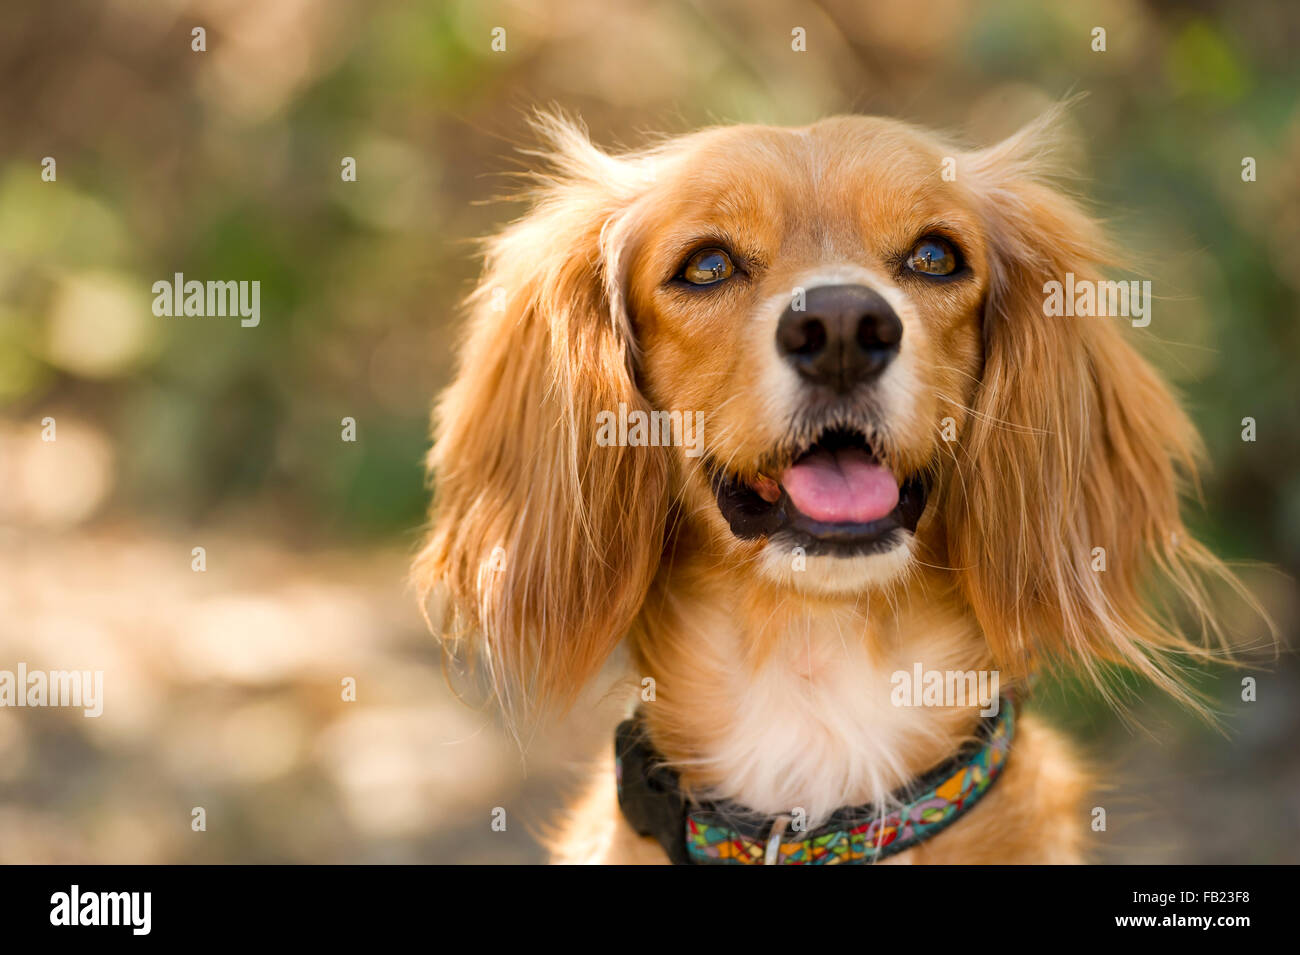 Cocker Spaniel is a cute fluffy brown Cocker Spaniel outdoors looking pretty and serene. - Stock Image